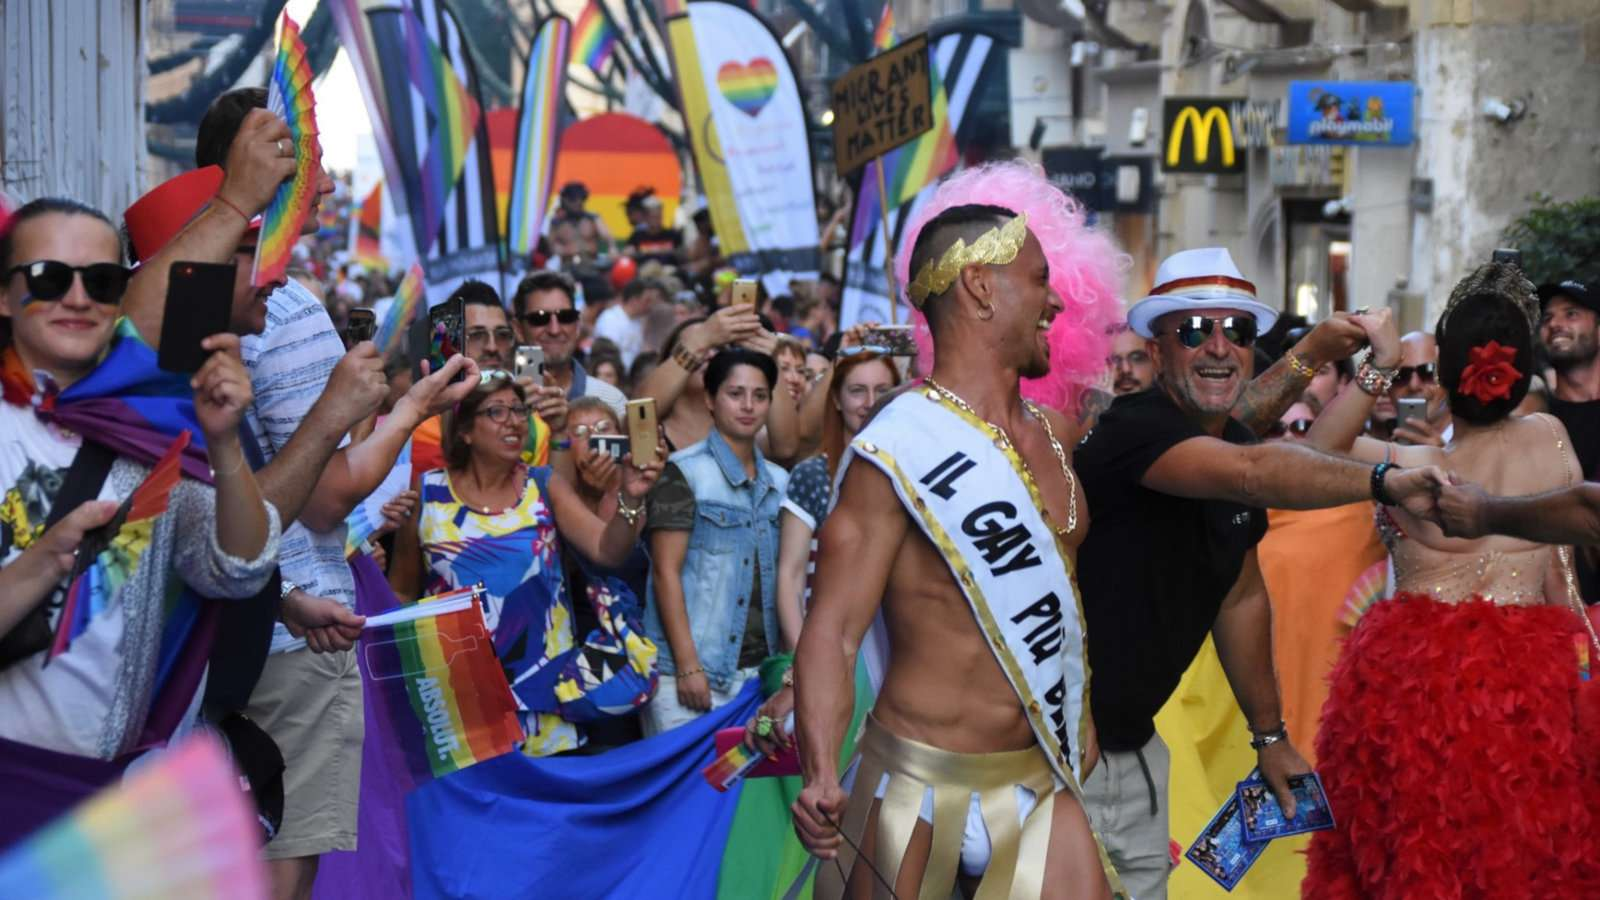 If you travel to Malta in September you can experience the week-long gay pride festivities!